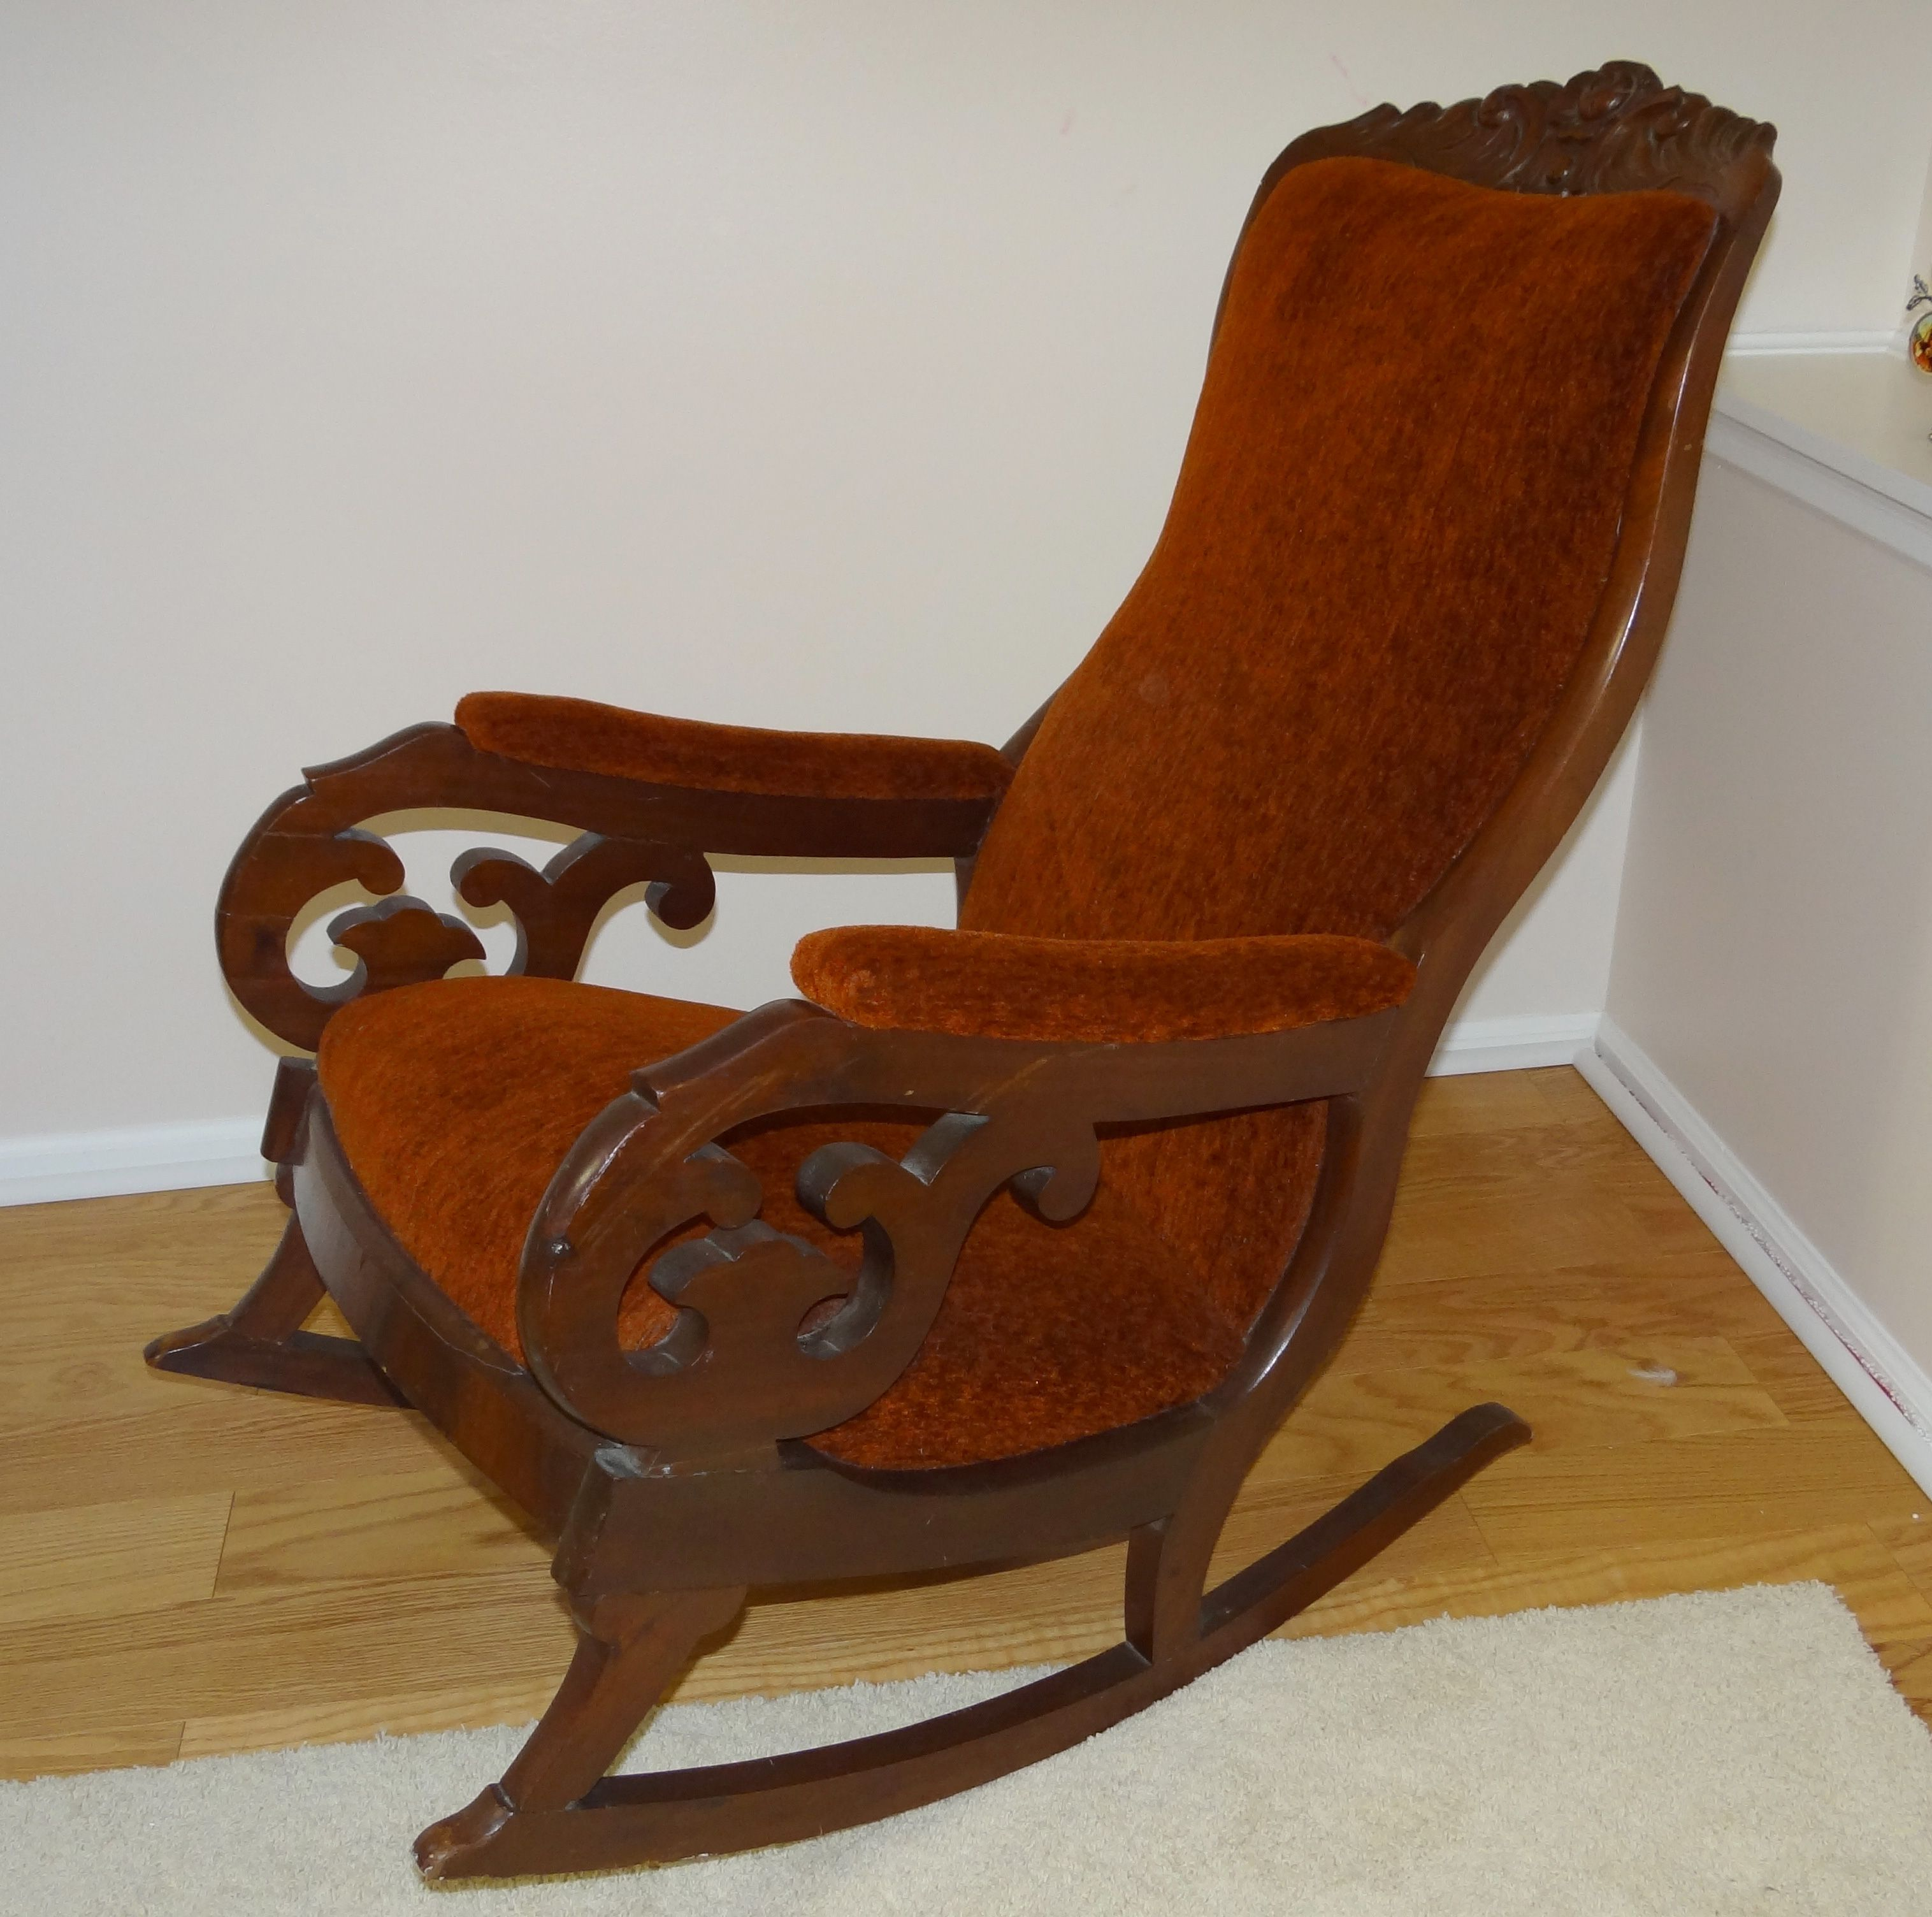 Antique Chair Rocking Chair On Pinterest Upholstered Rocking Chairs